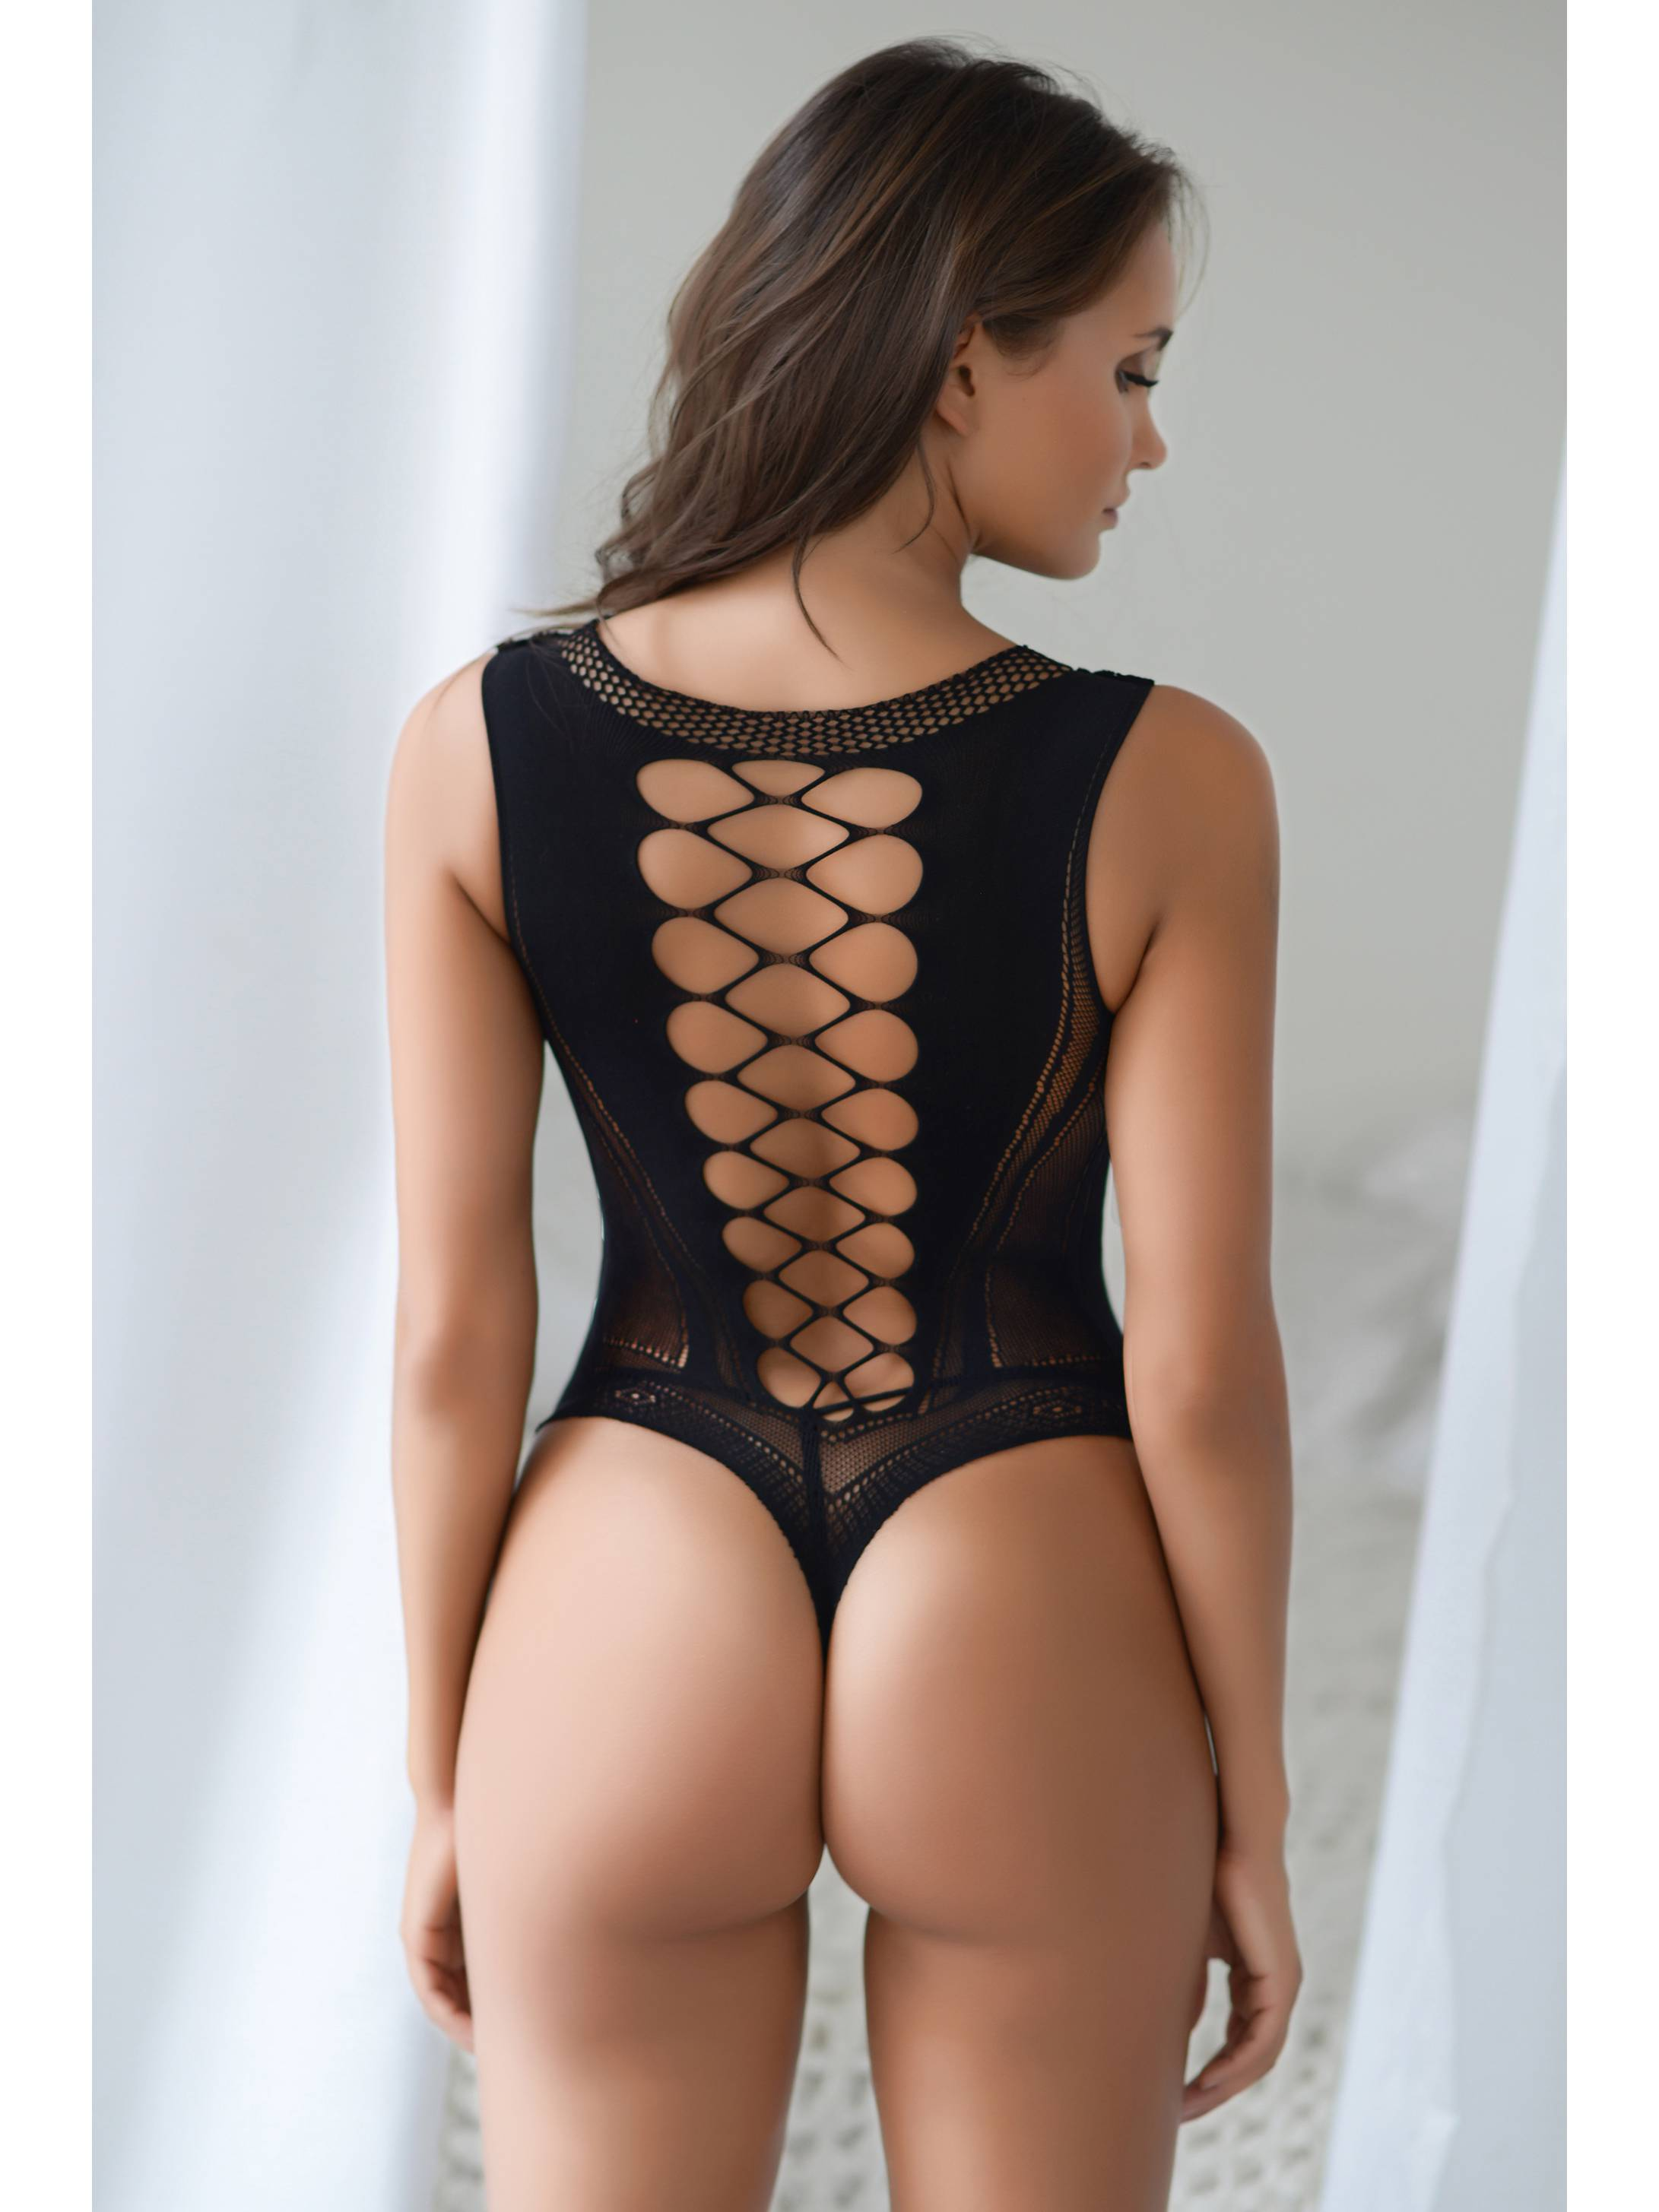 7b90f66157 Killer Legs Plus Size Fishnet Bodysuit Sheer Bodice Grid Cutout Thong Back  Teddy Romper Body Stocking 818JT179Q Queen - Walmart.com